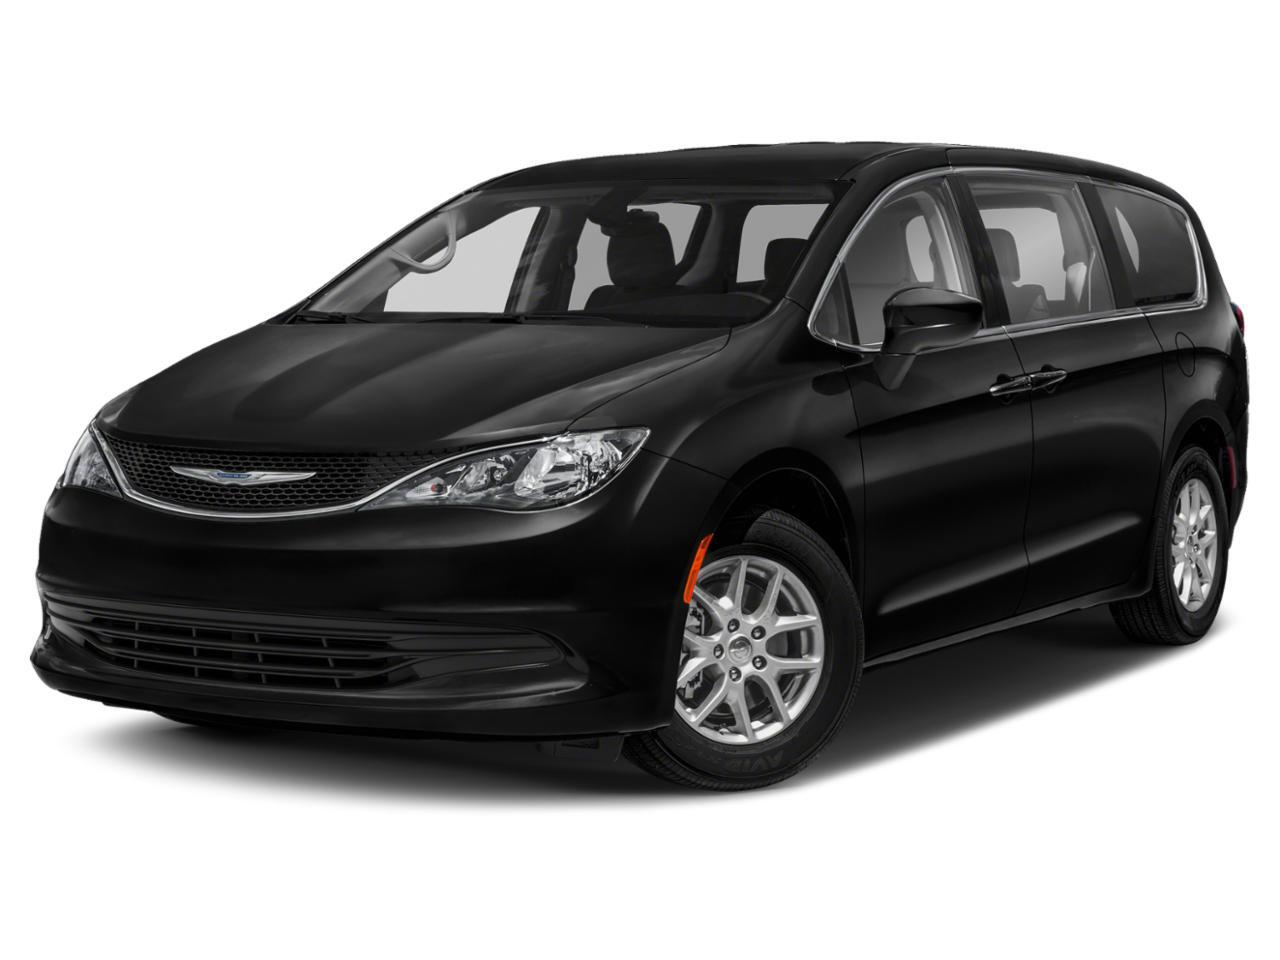 2018 Chrysler Pacifica Janesville WI